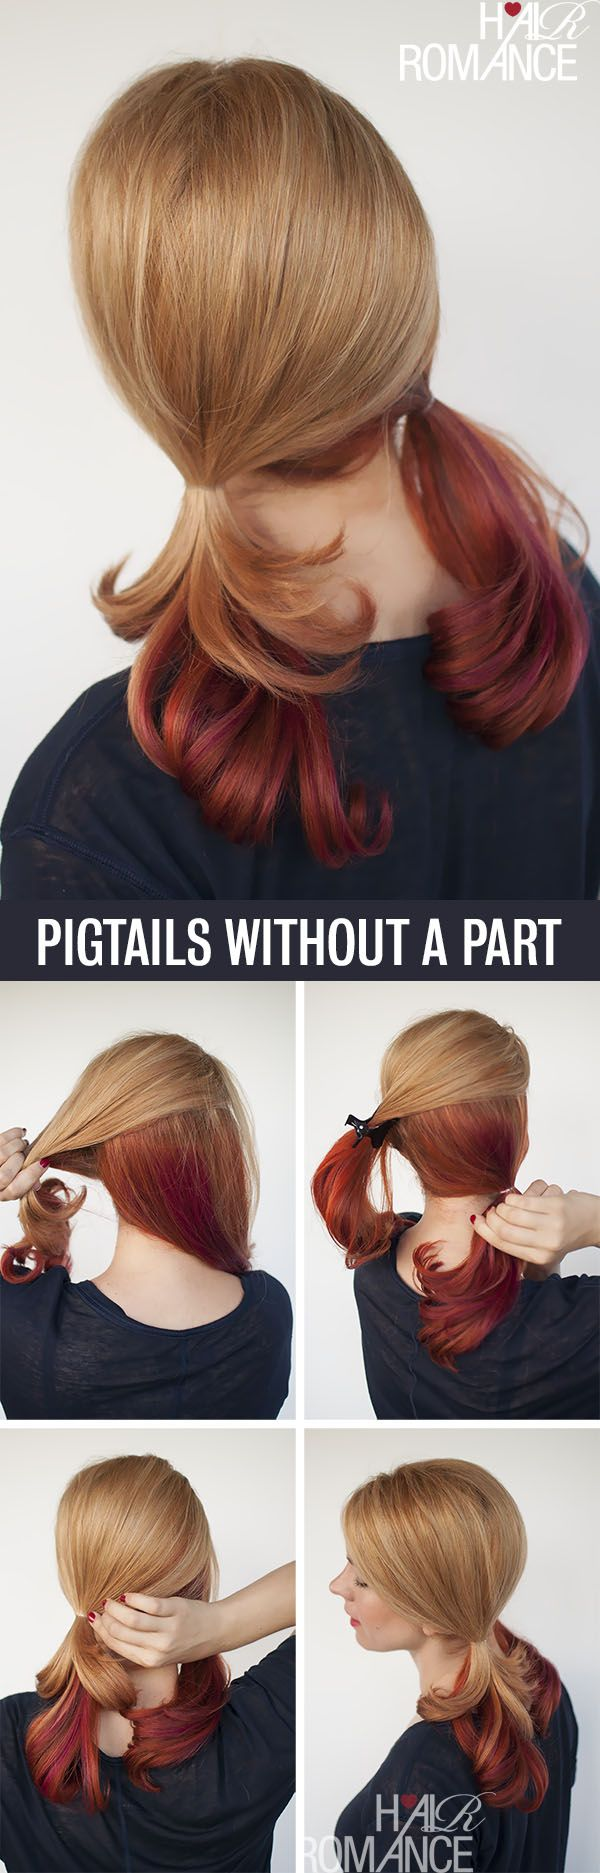 Pigtails without part line